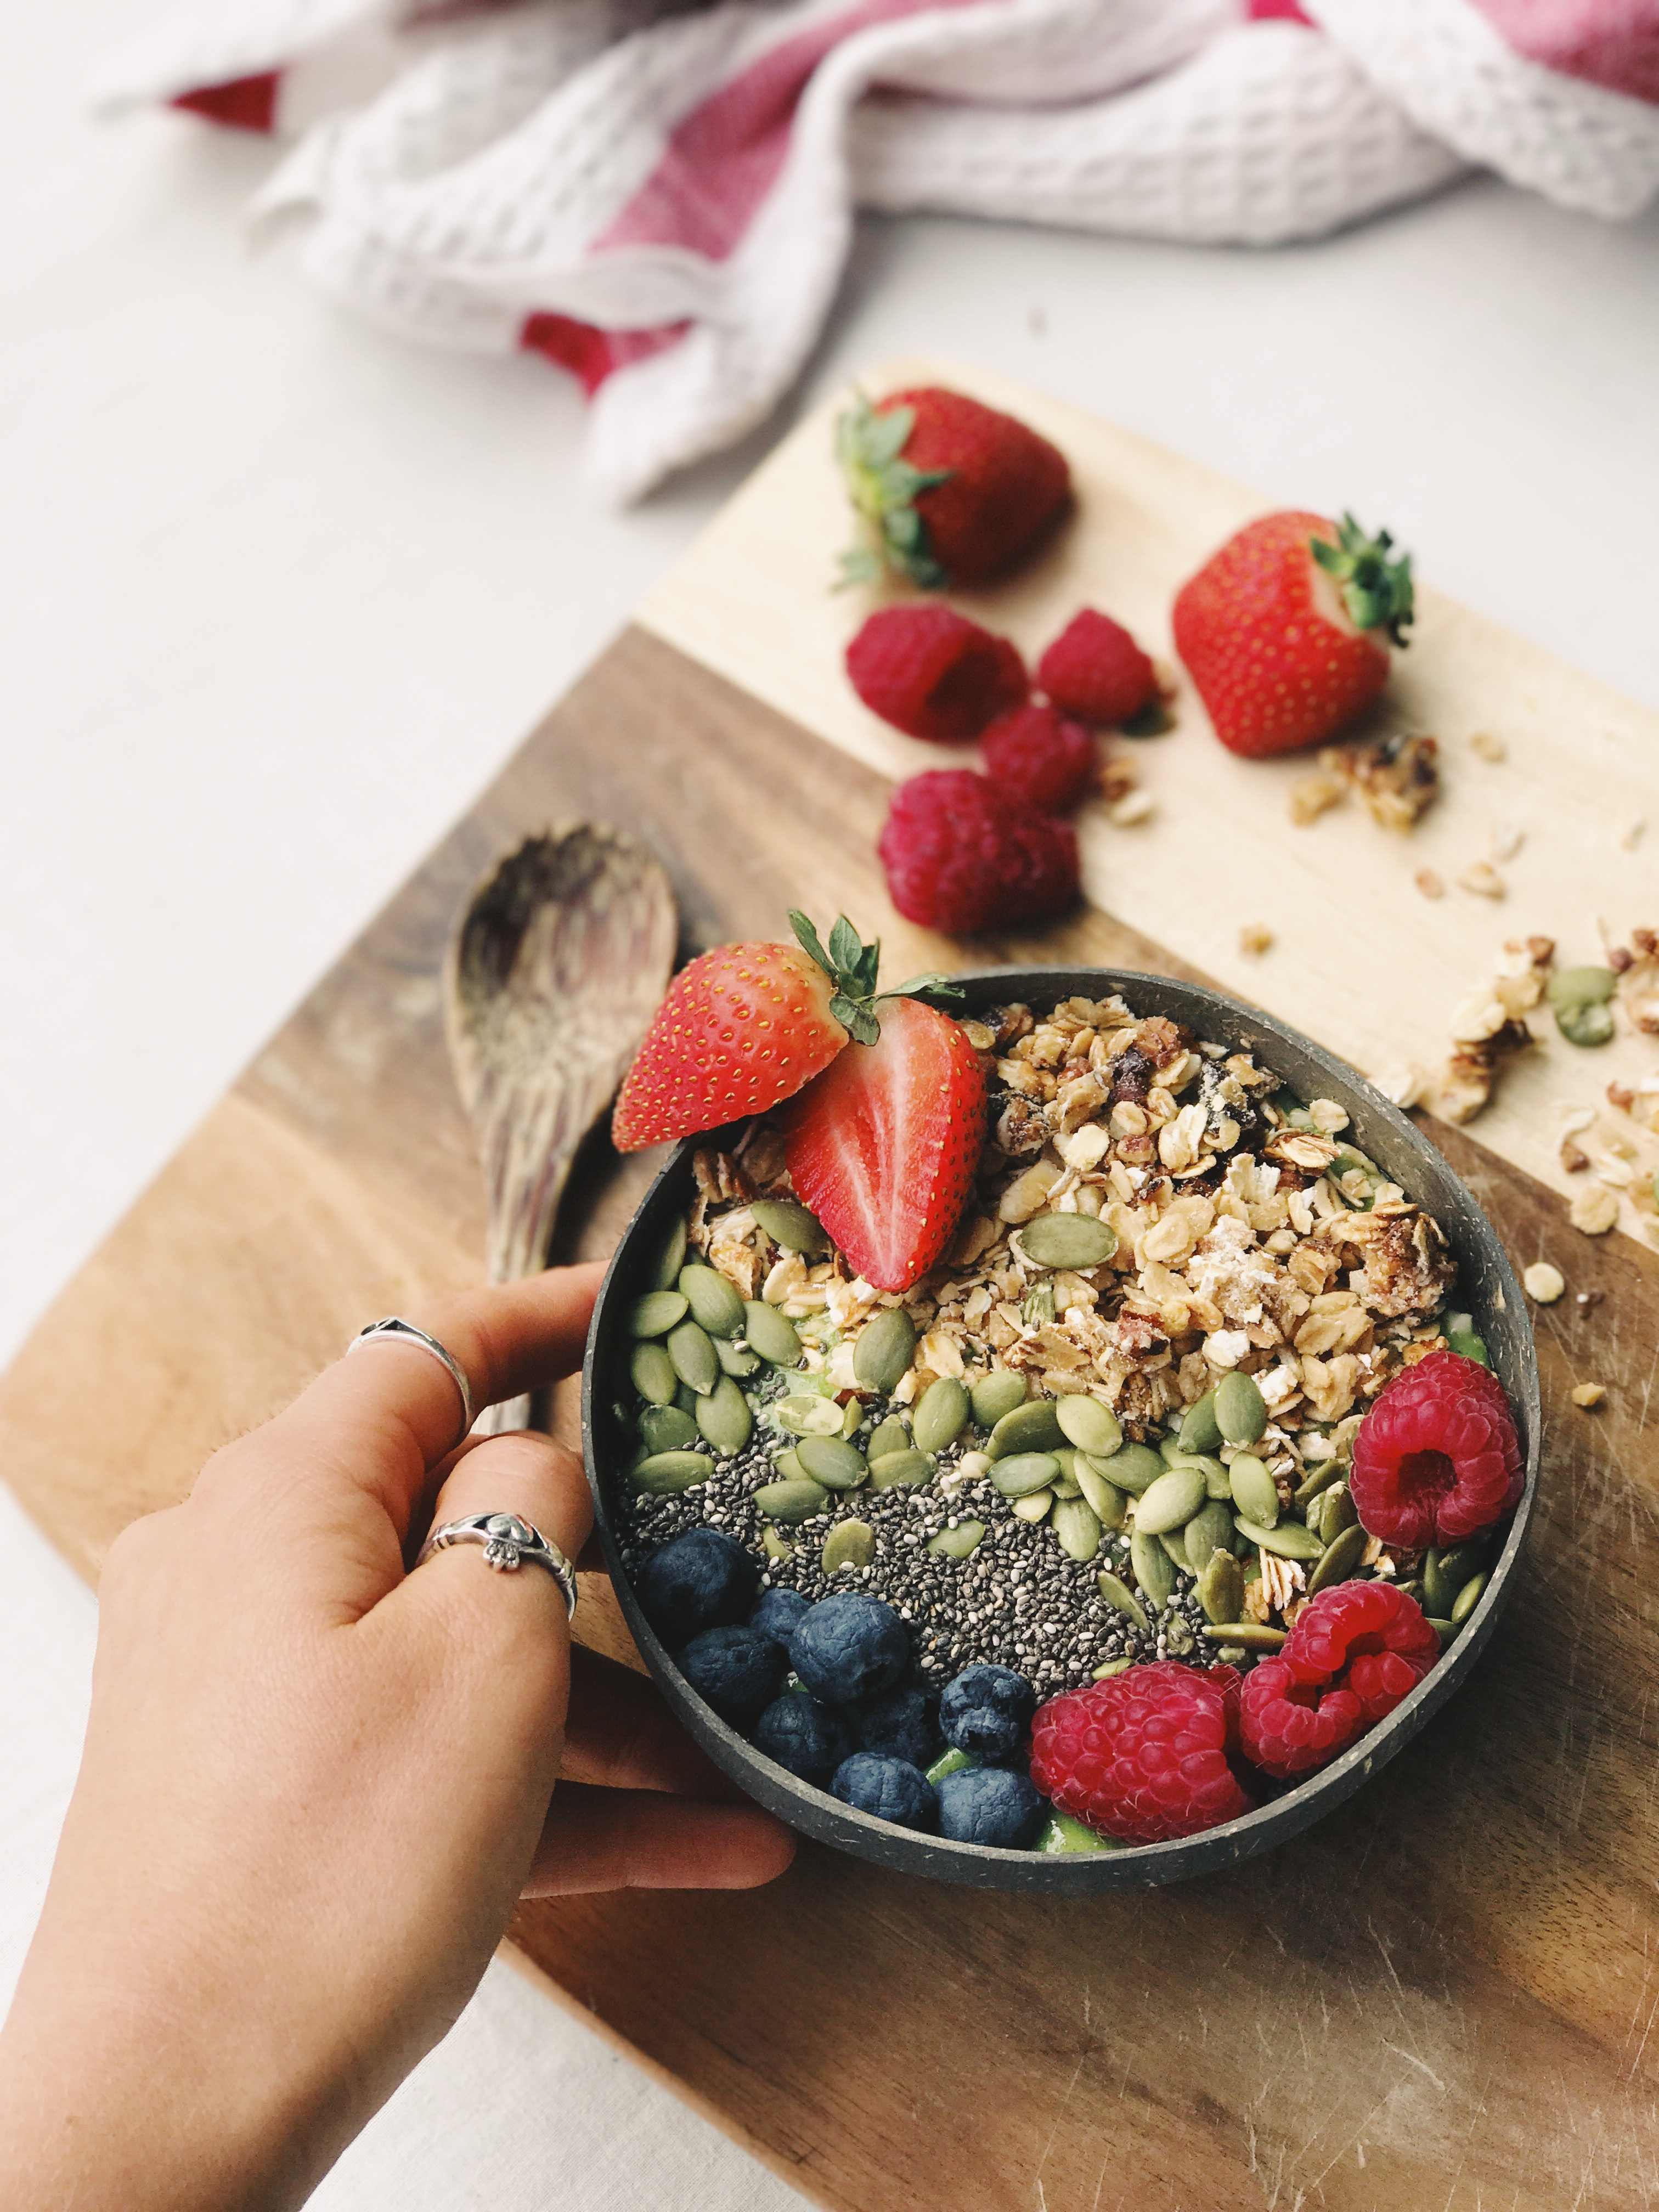 The Breakie Smoothie Bowl